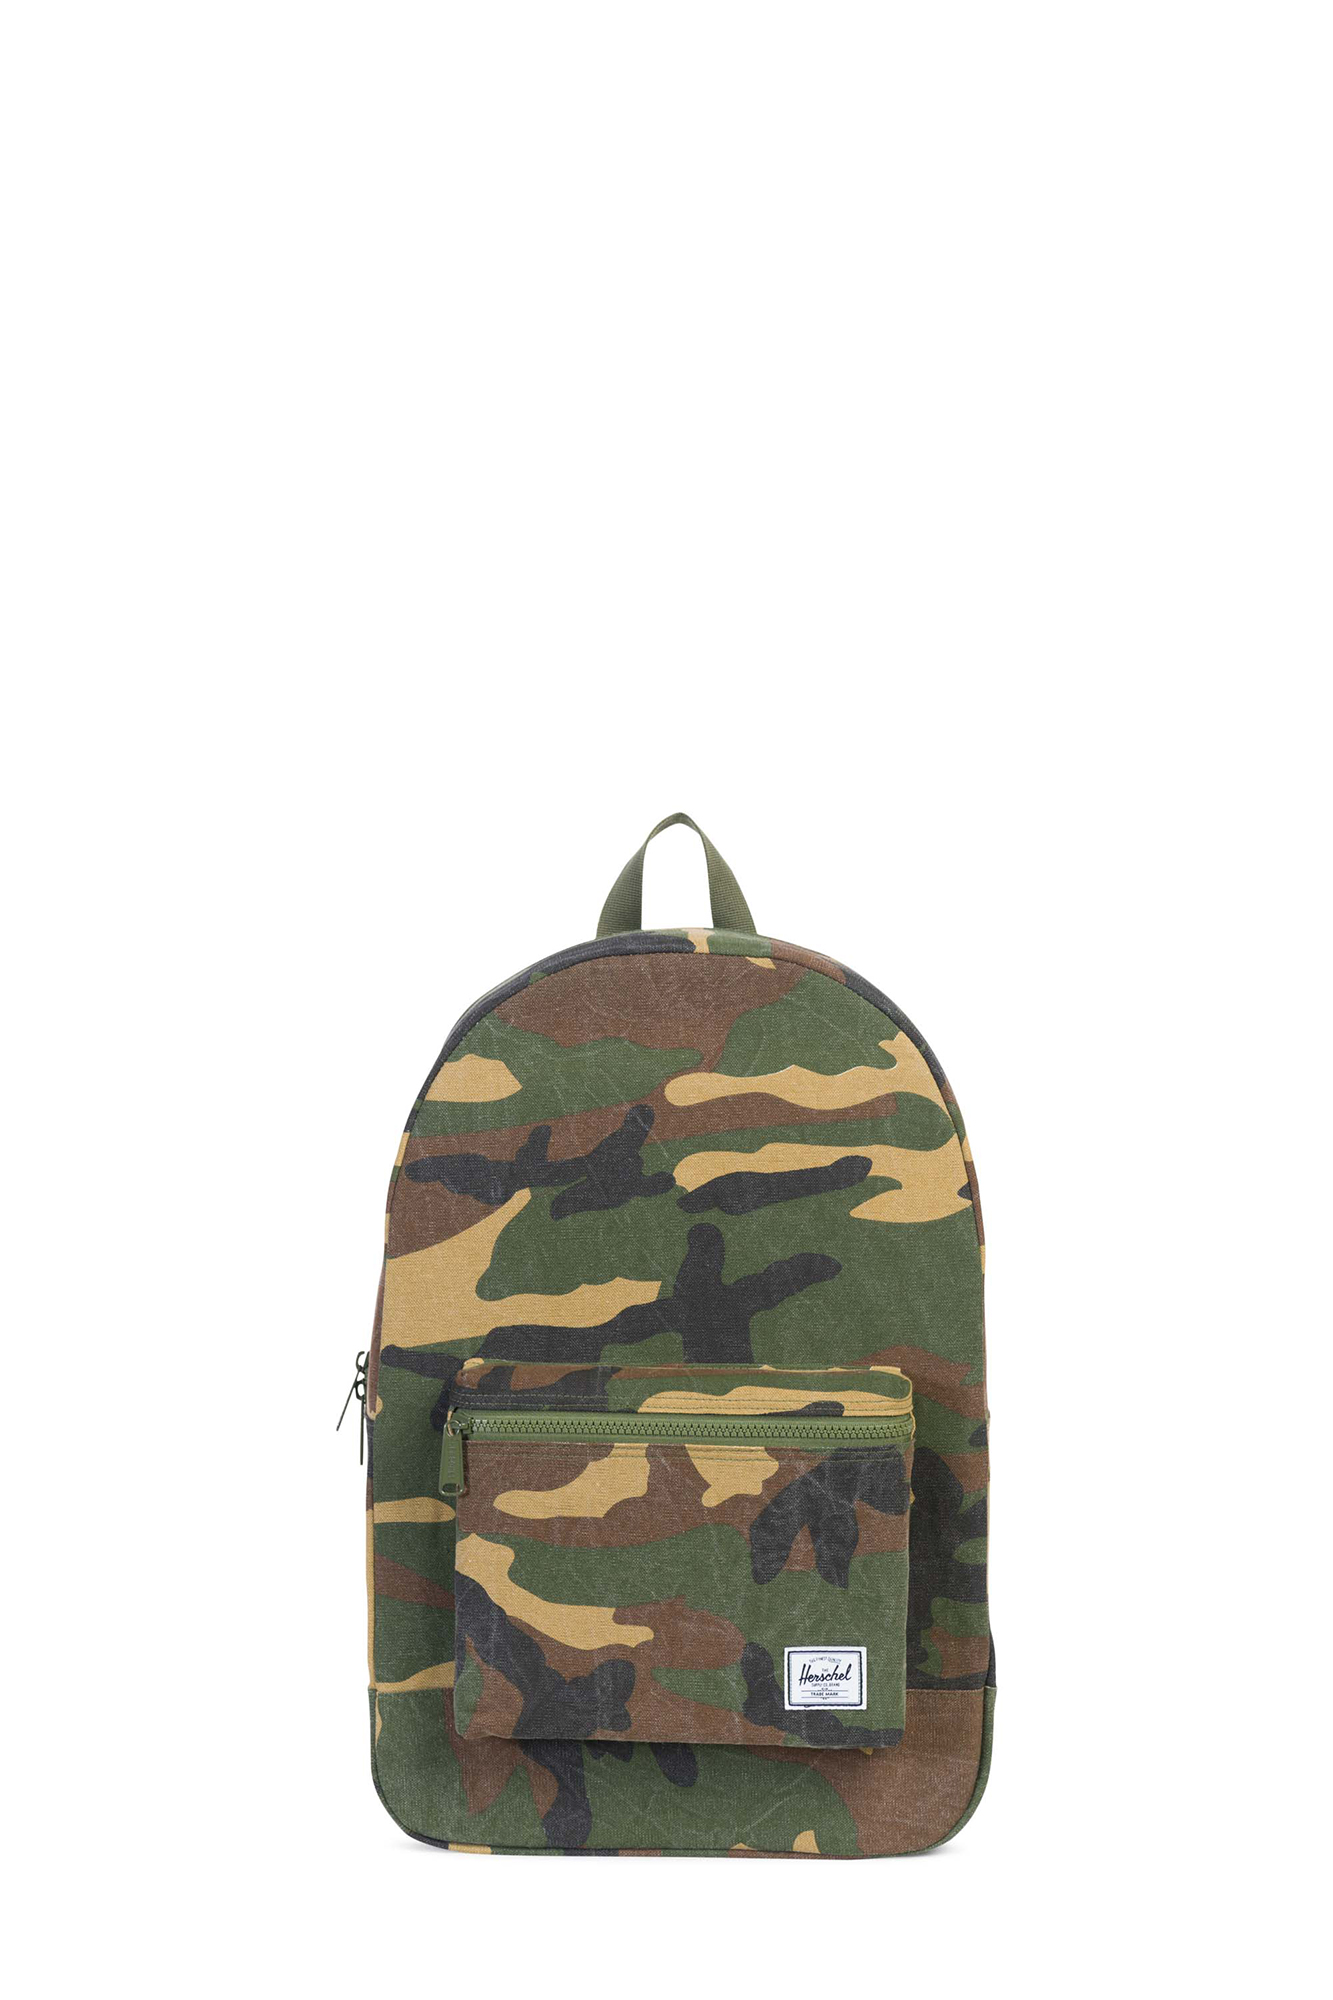 Herschel - Cotton Canvas Daypack Camo Backpack